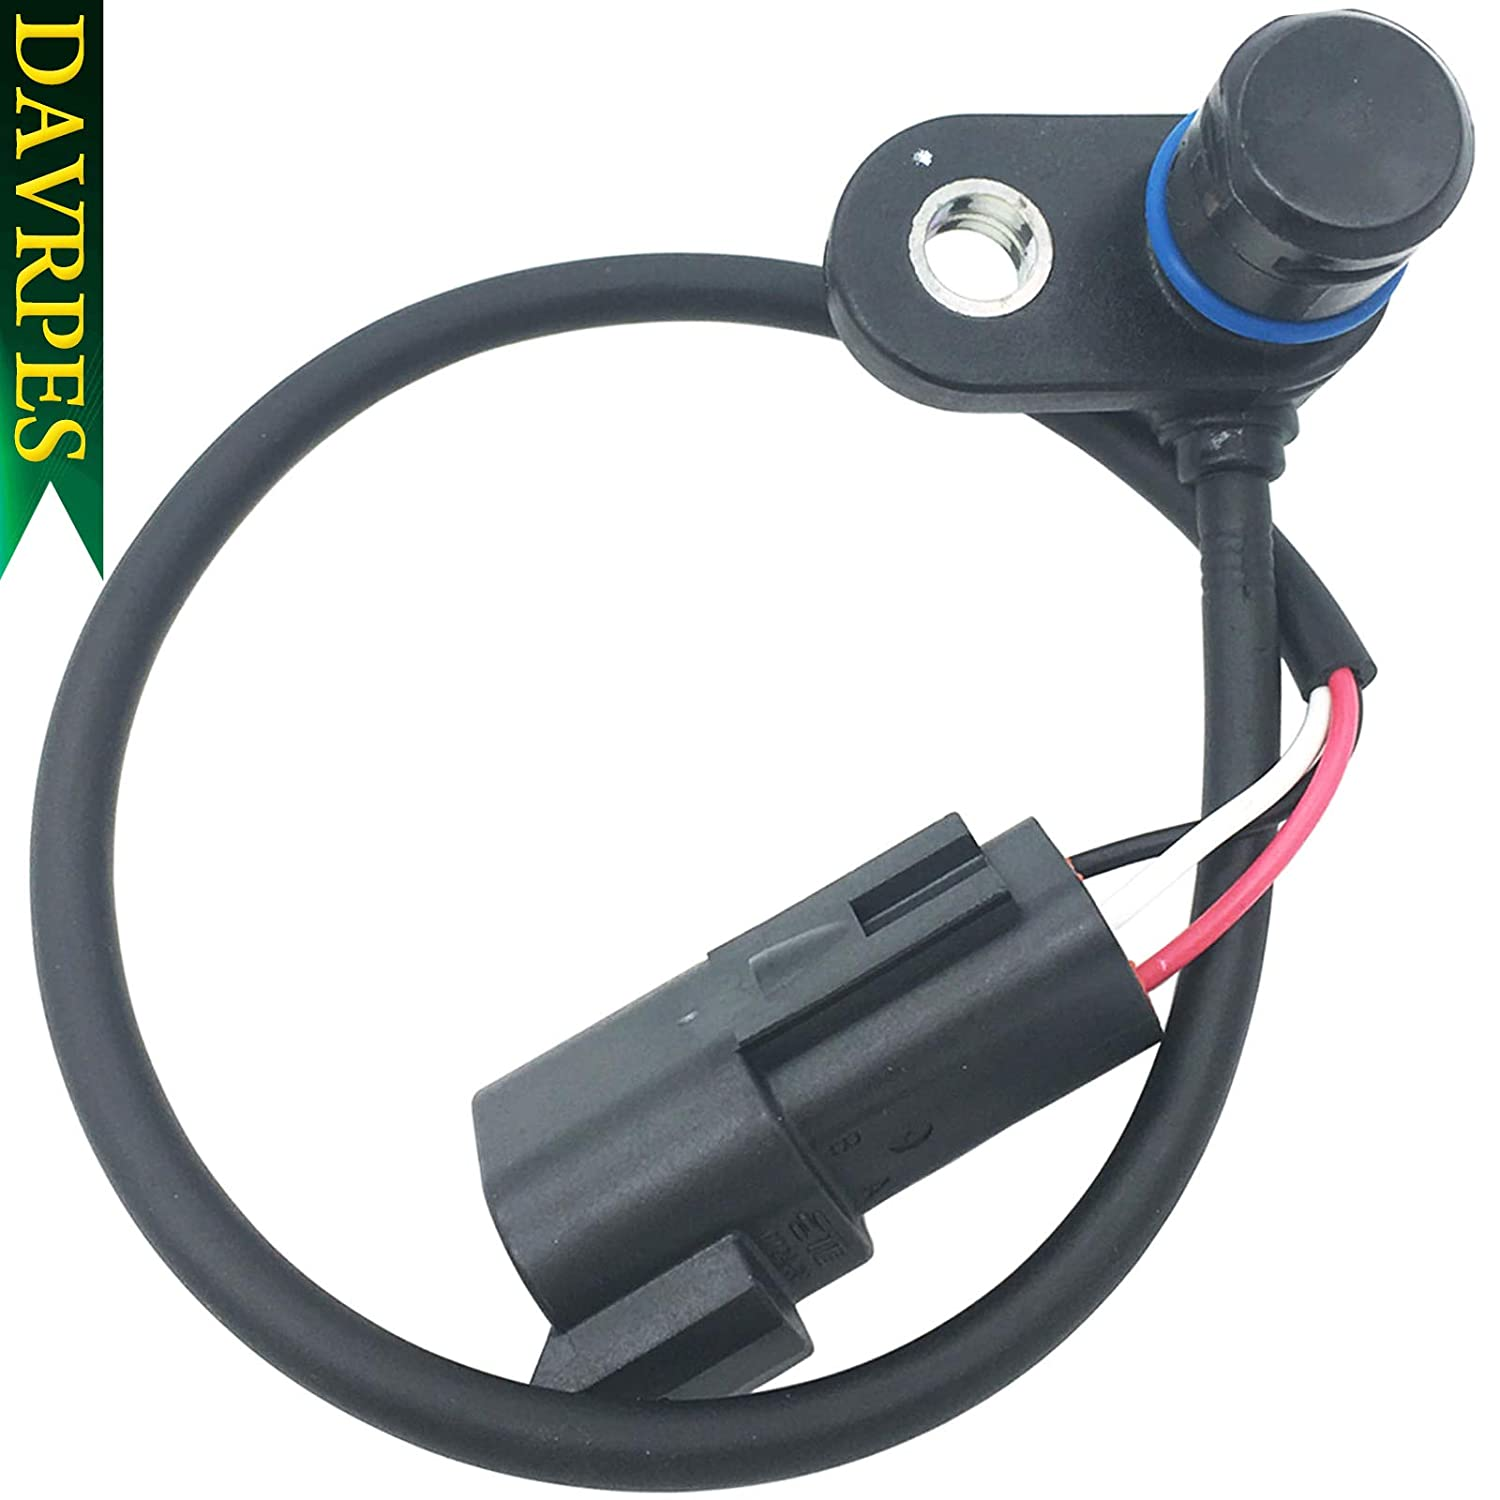 New Electronic Speed Sensor For 2000-2006 Harley Davidson Softail 74430-00D